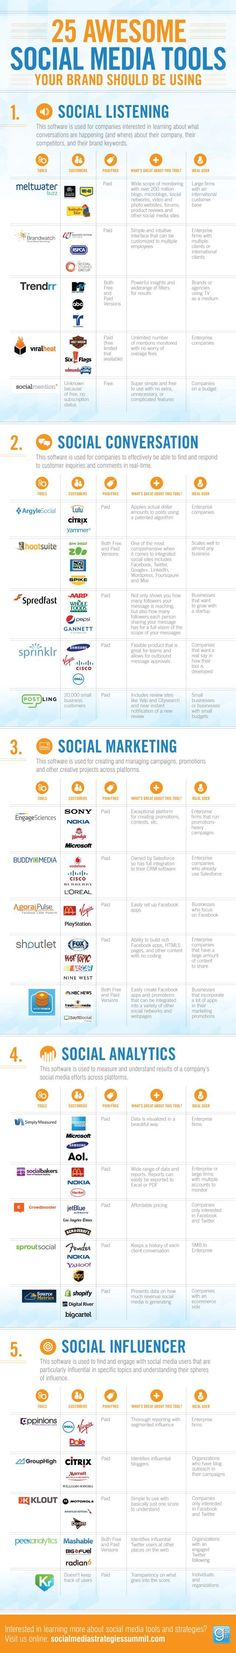 25 Social business tools that rock! #searchengineoptimizationtools,